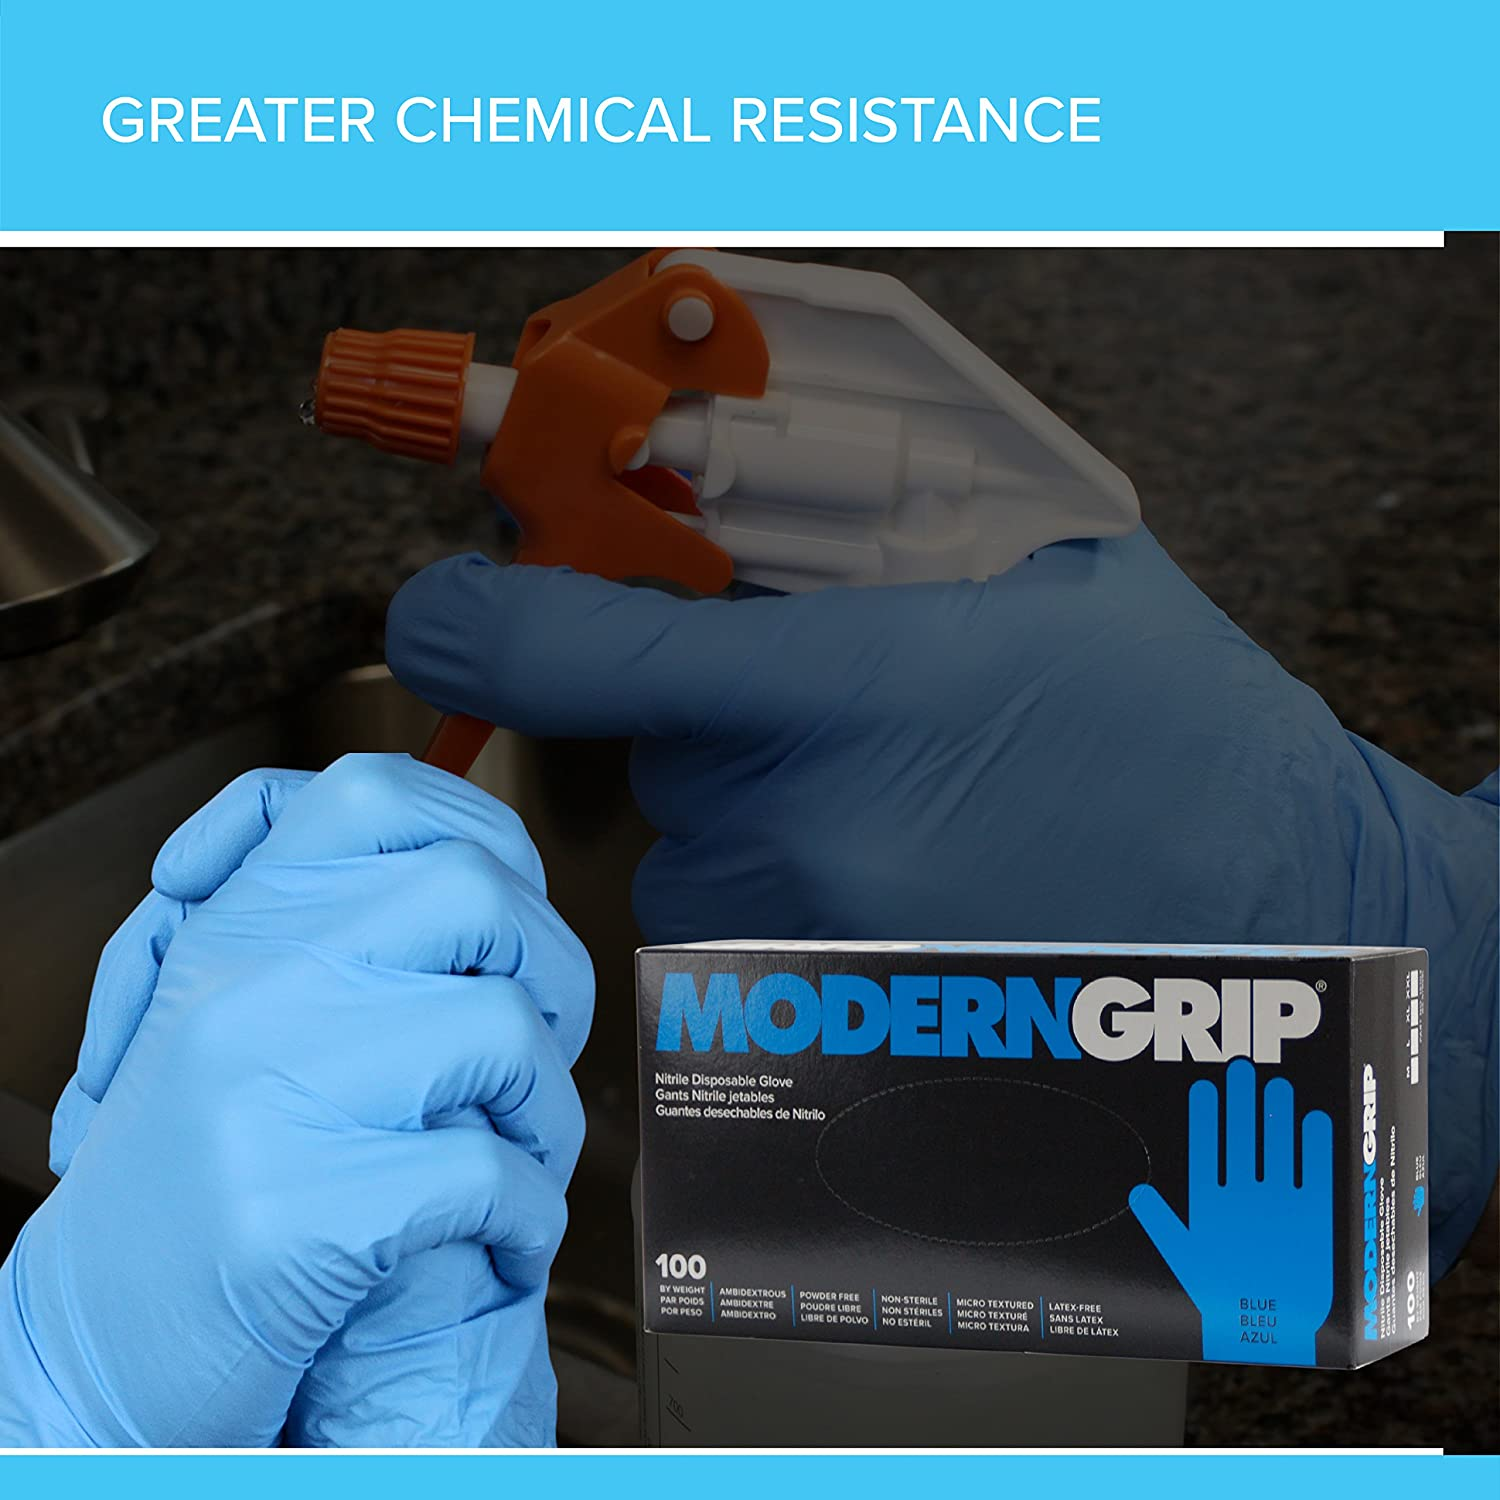 Modern Grip 16103-M Nitrile 6 mil Thickness Premium Disposable Gloves - Industrial and Household, Powder Free, Latex Free, Micro Textured for Superior Grip ...